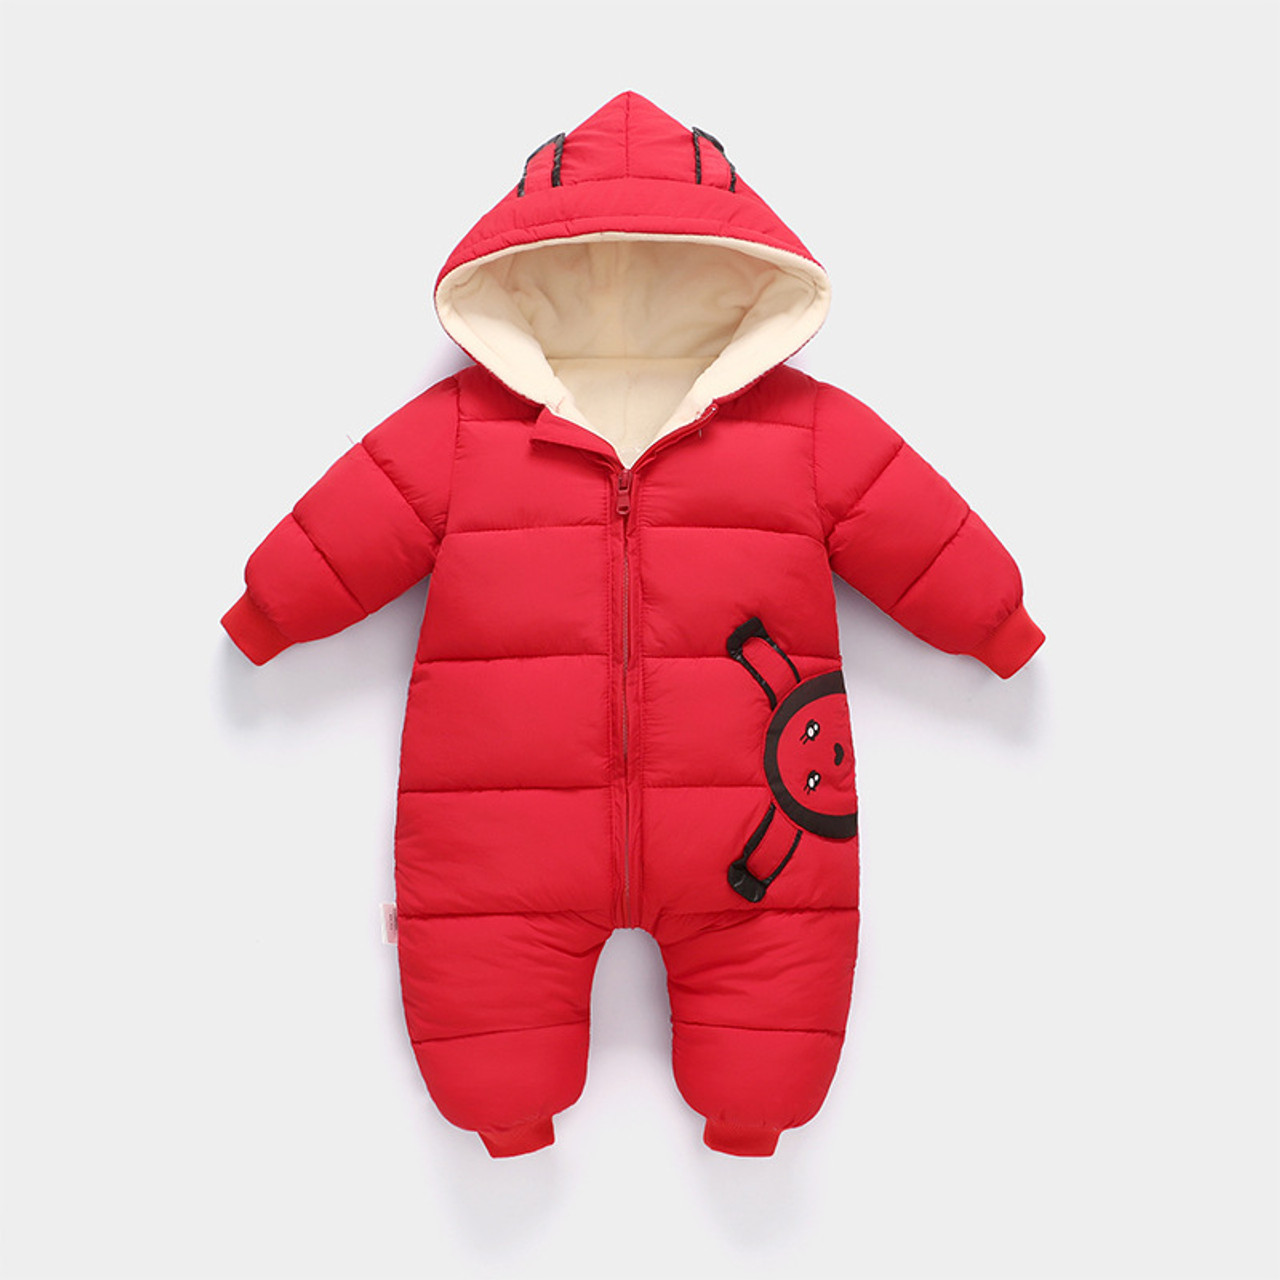 b75dd21d3 Baby Rompers Winter Jackets for Baby Girls Clothing Spring Autumn ...